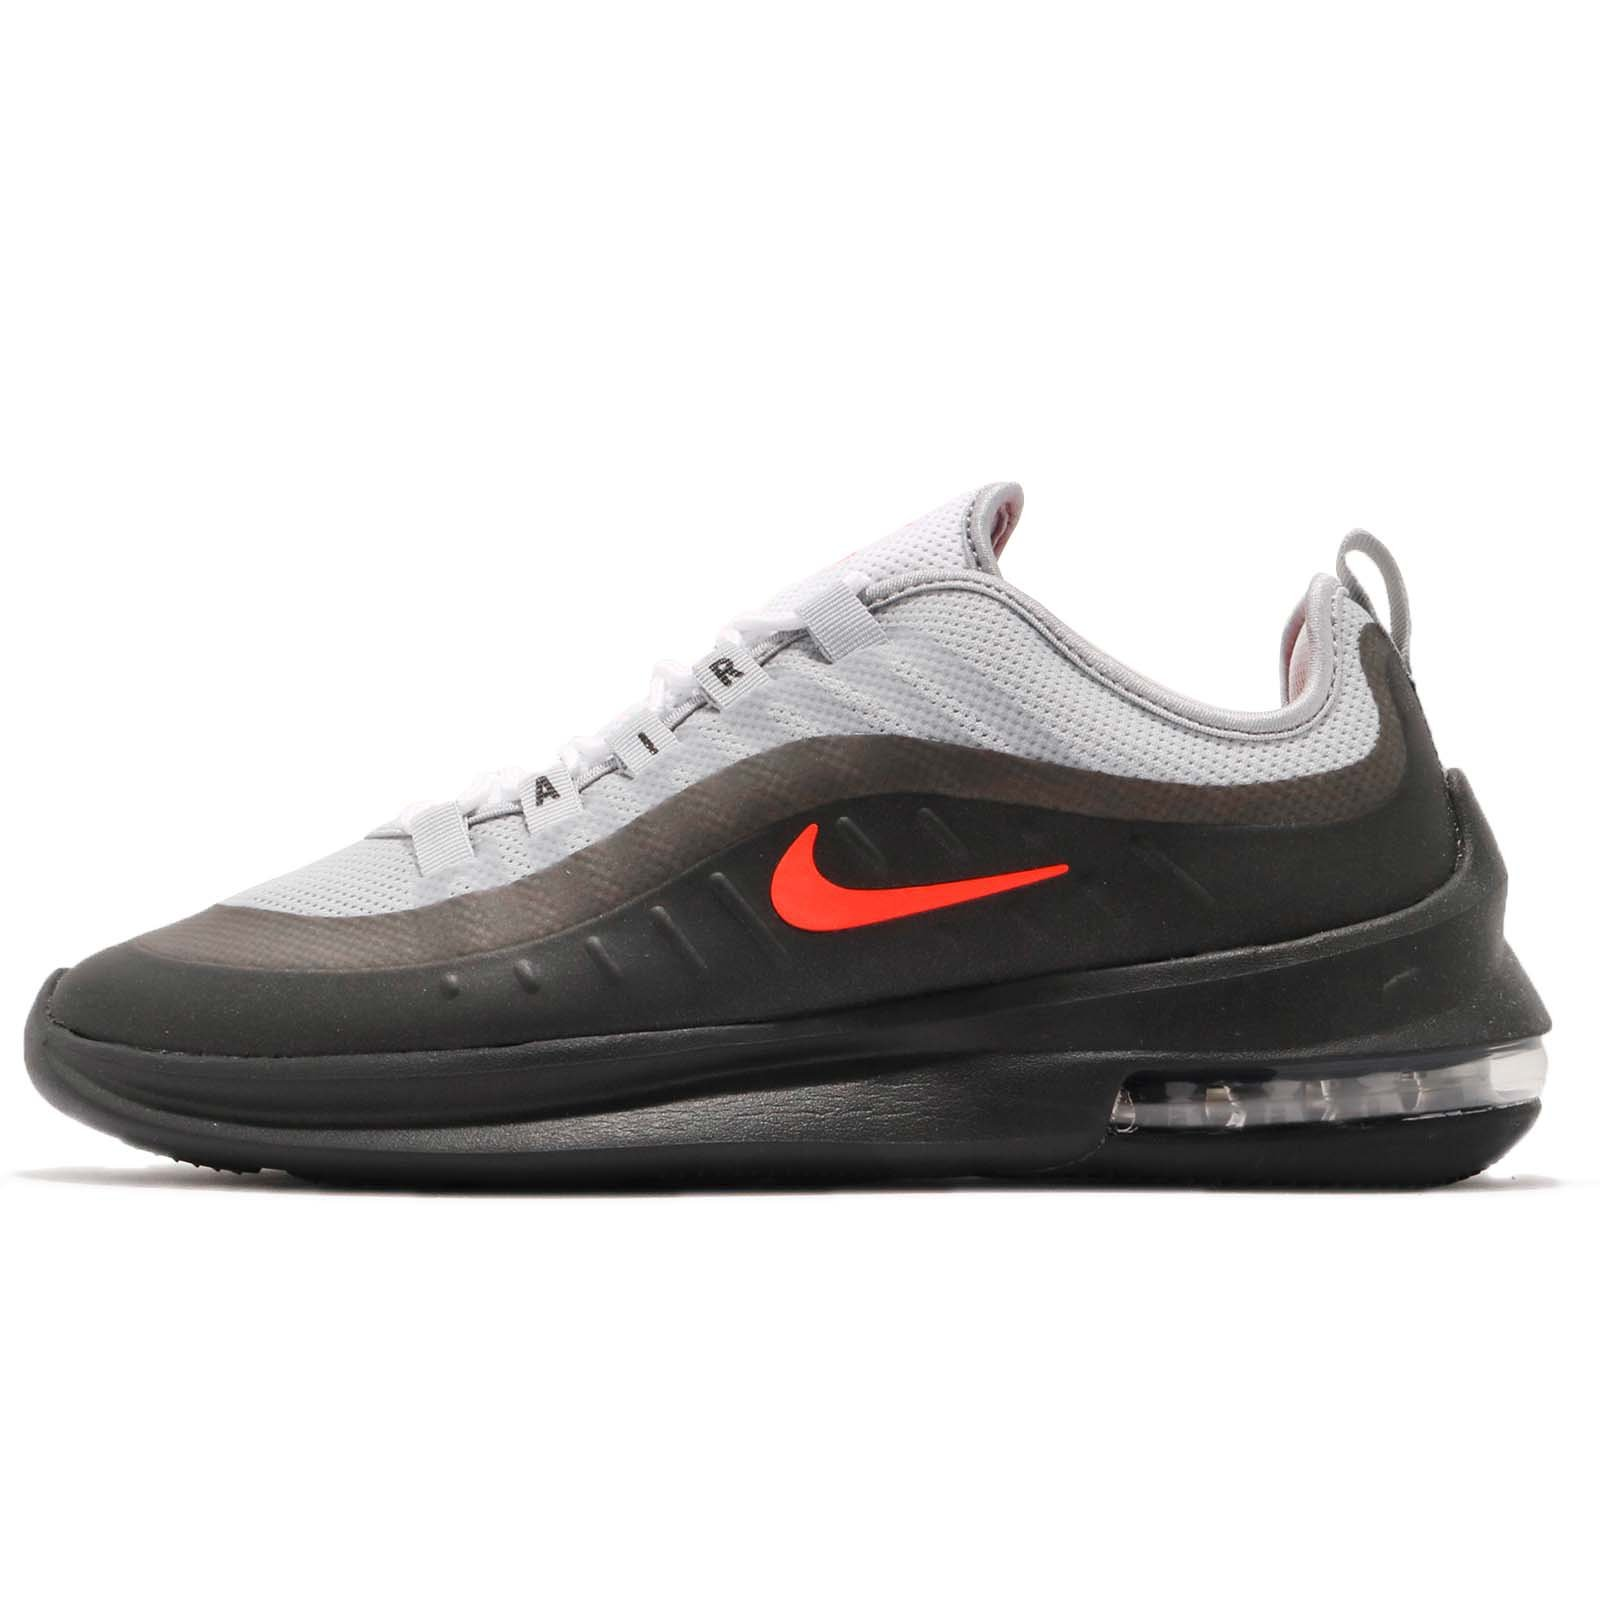 f2508090e446 Galleon - Nike Men's Air Max Axis Running Shoe, Wolf Grey/Total  Crimson/Black/Anthracite, Size 9